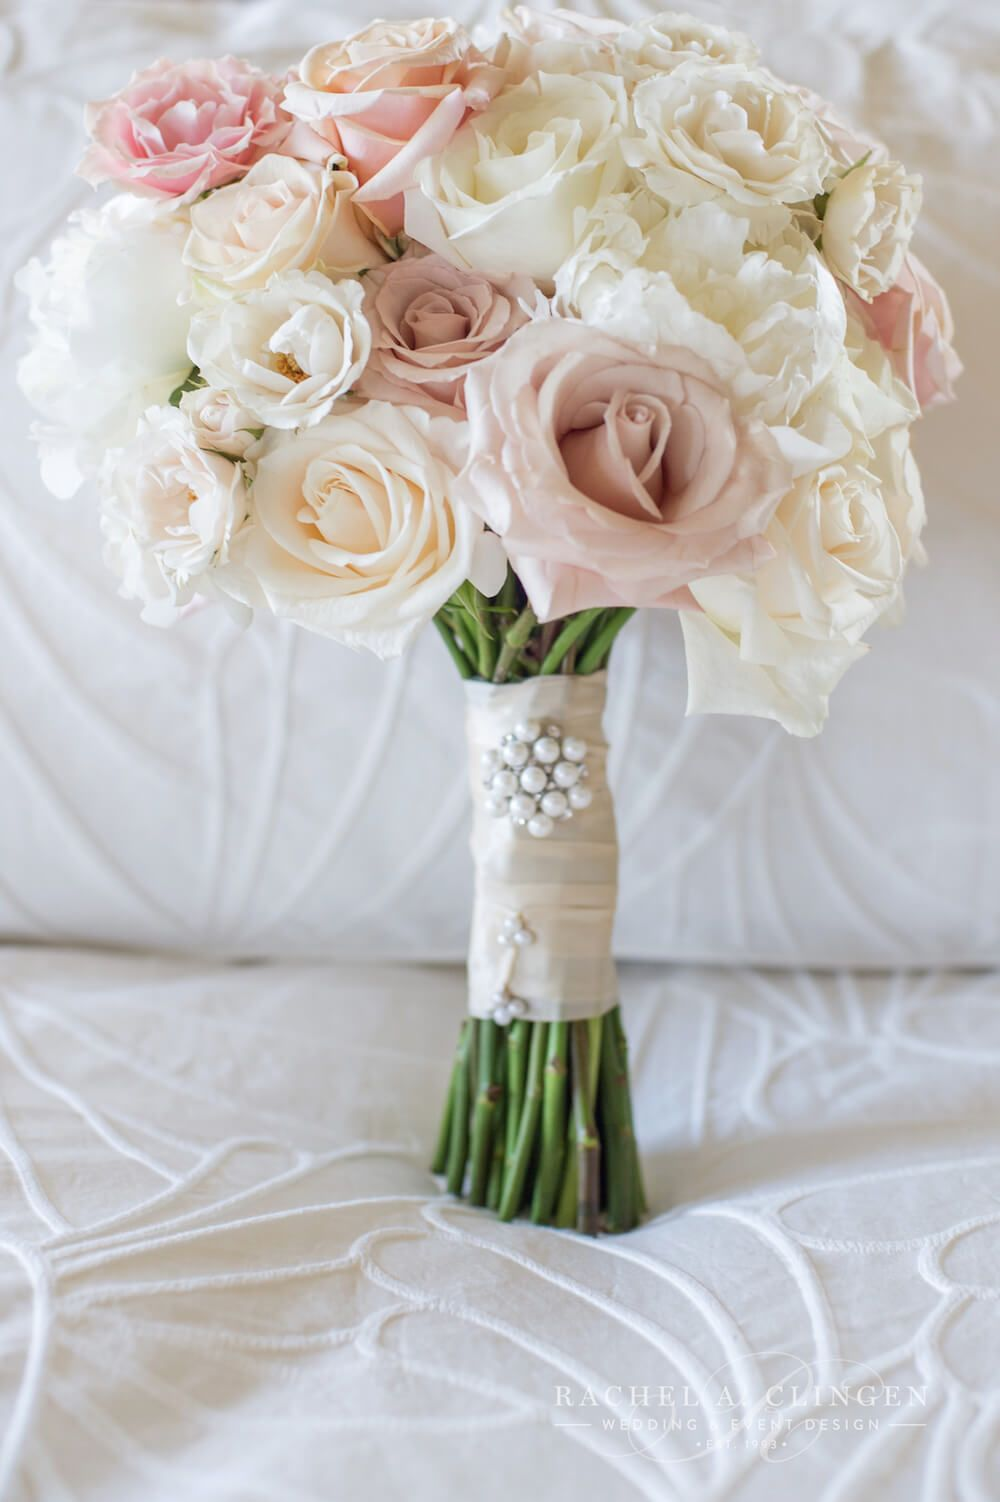 Ivory pink blush wedding bouquet finished with ivory satin bow ivory pink blush wedding bouquet finished with ivory satin bow designed by rachel a clingen mightylinksfo